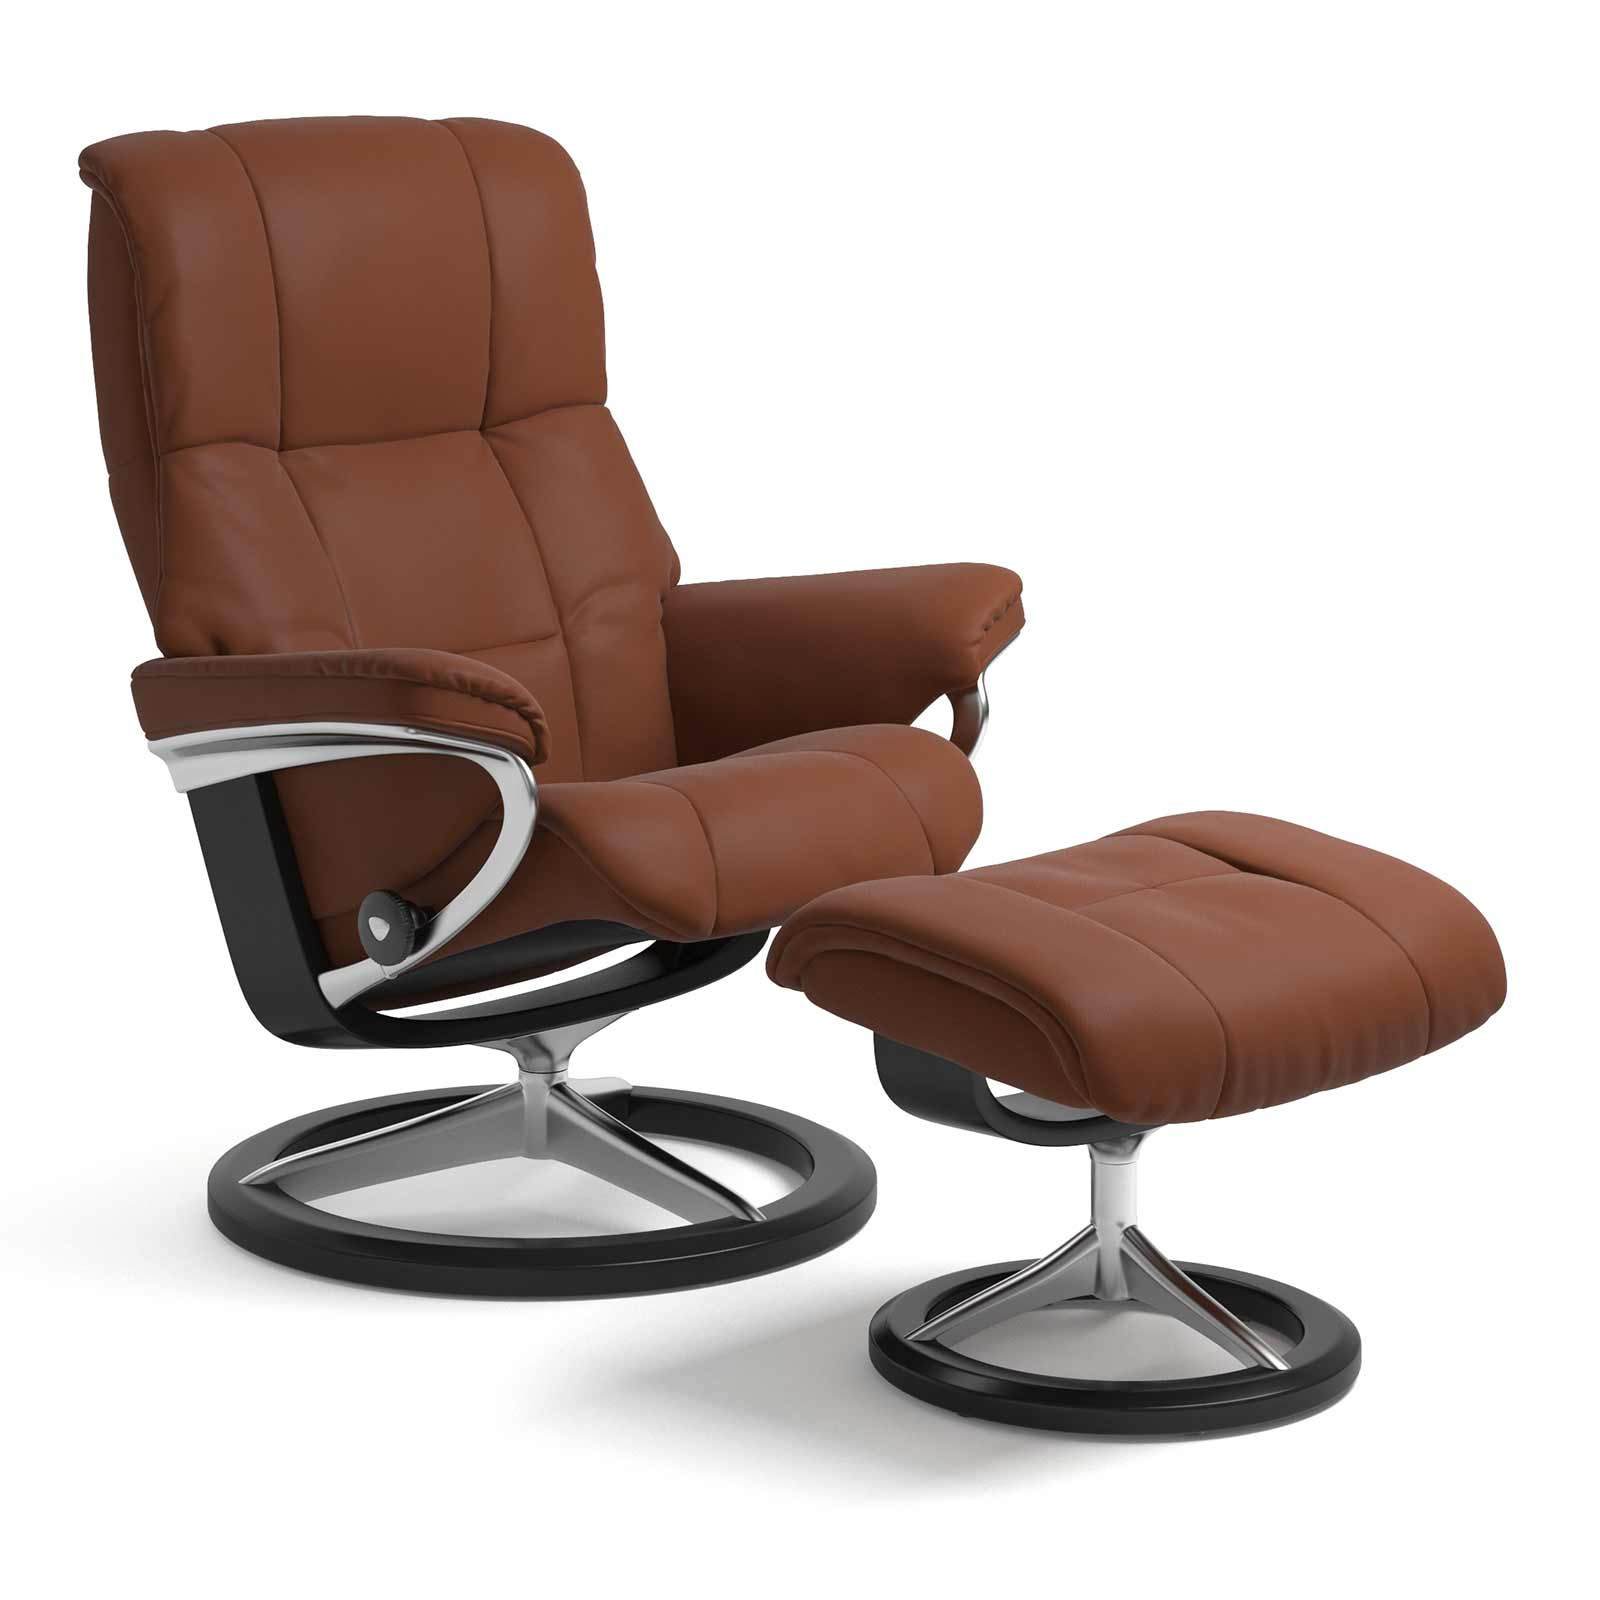 Stressless Magic Signature Sessel Stressless Sessel Mayfair Signature Paloma Copper Mit Hocker